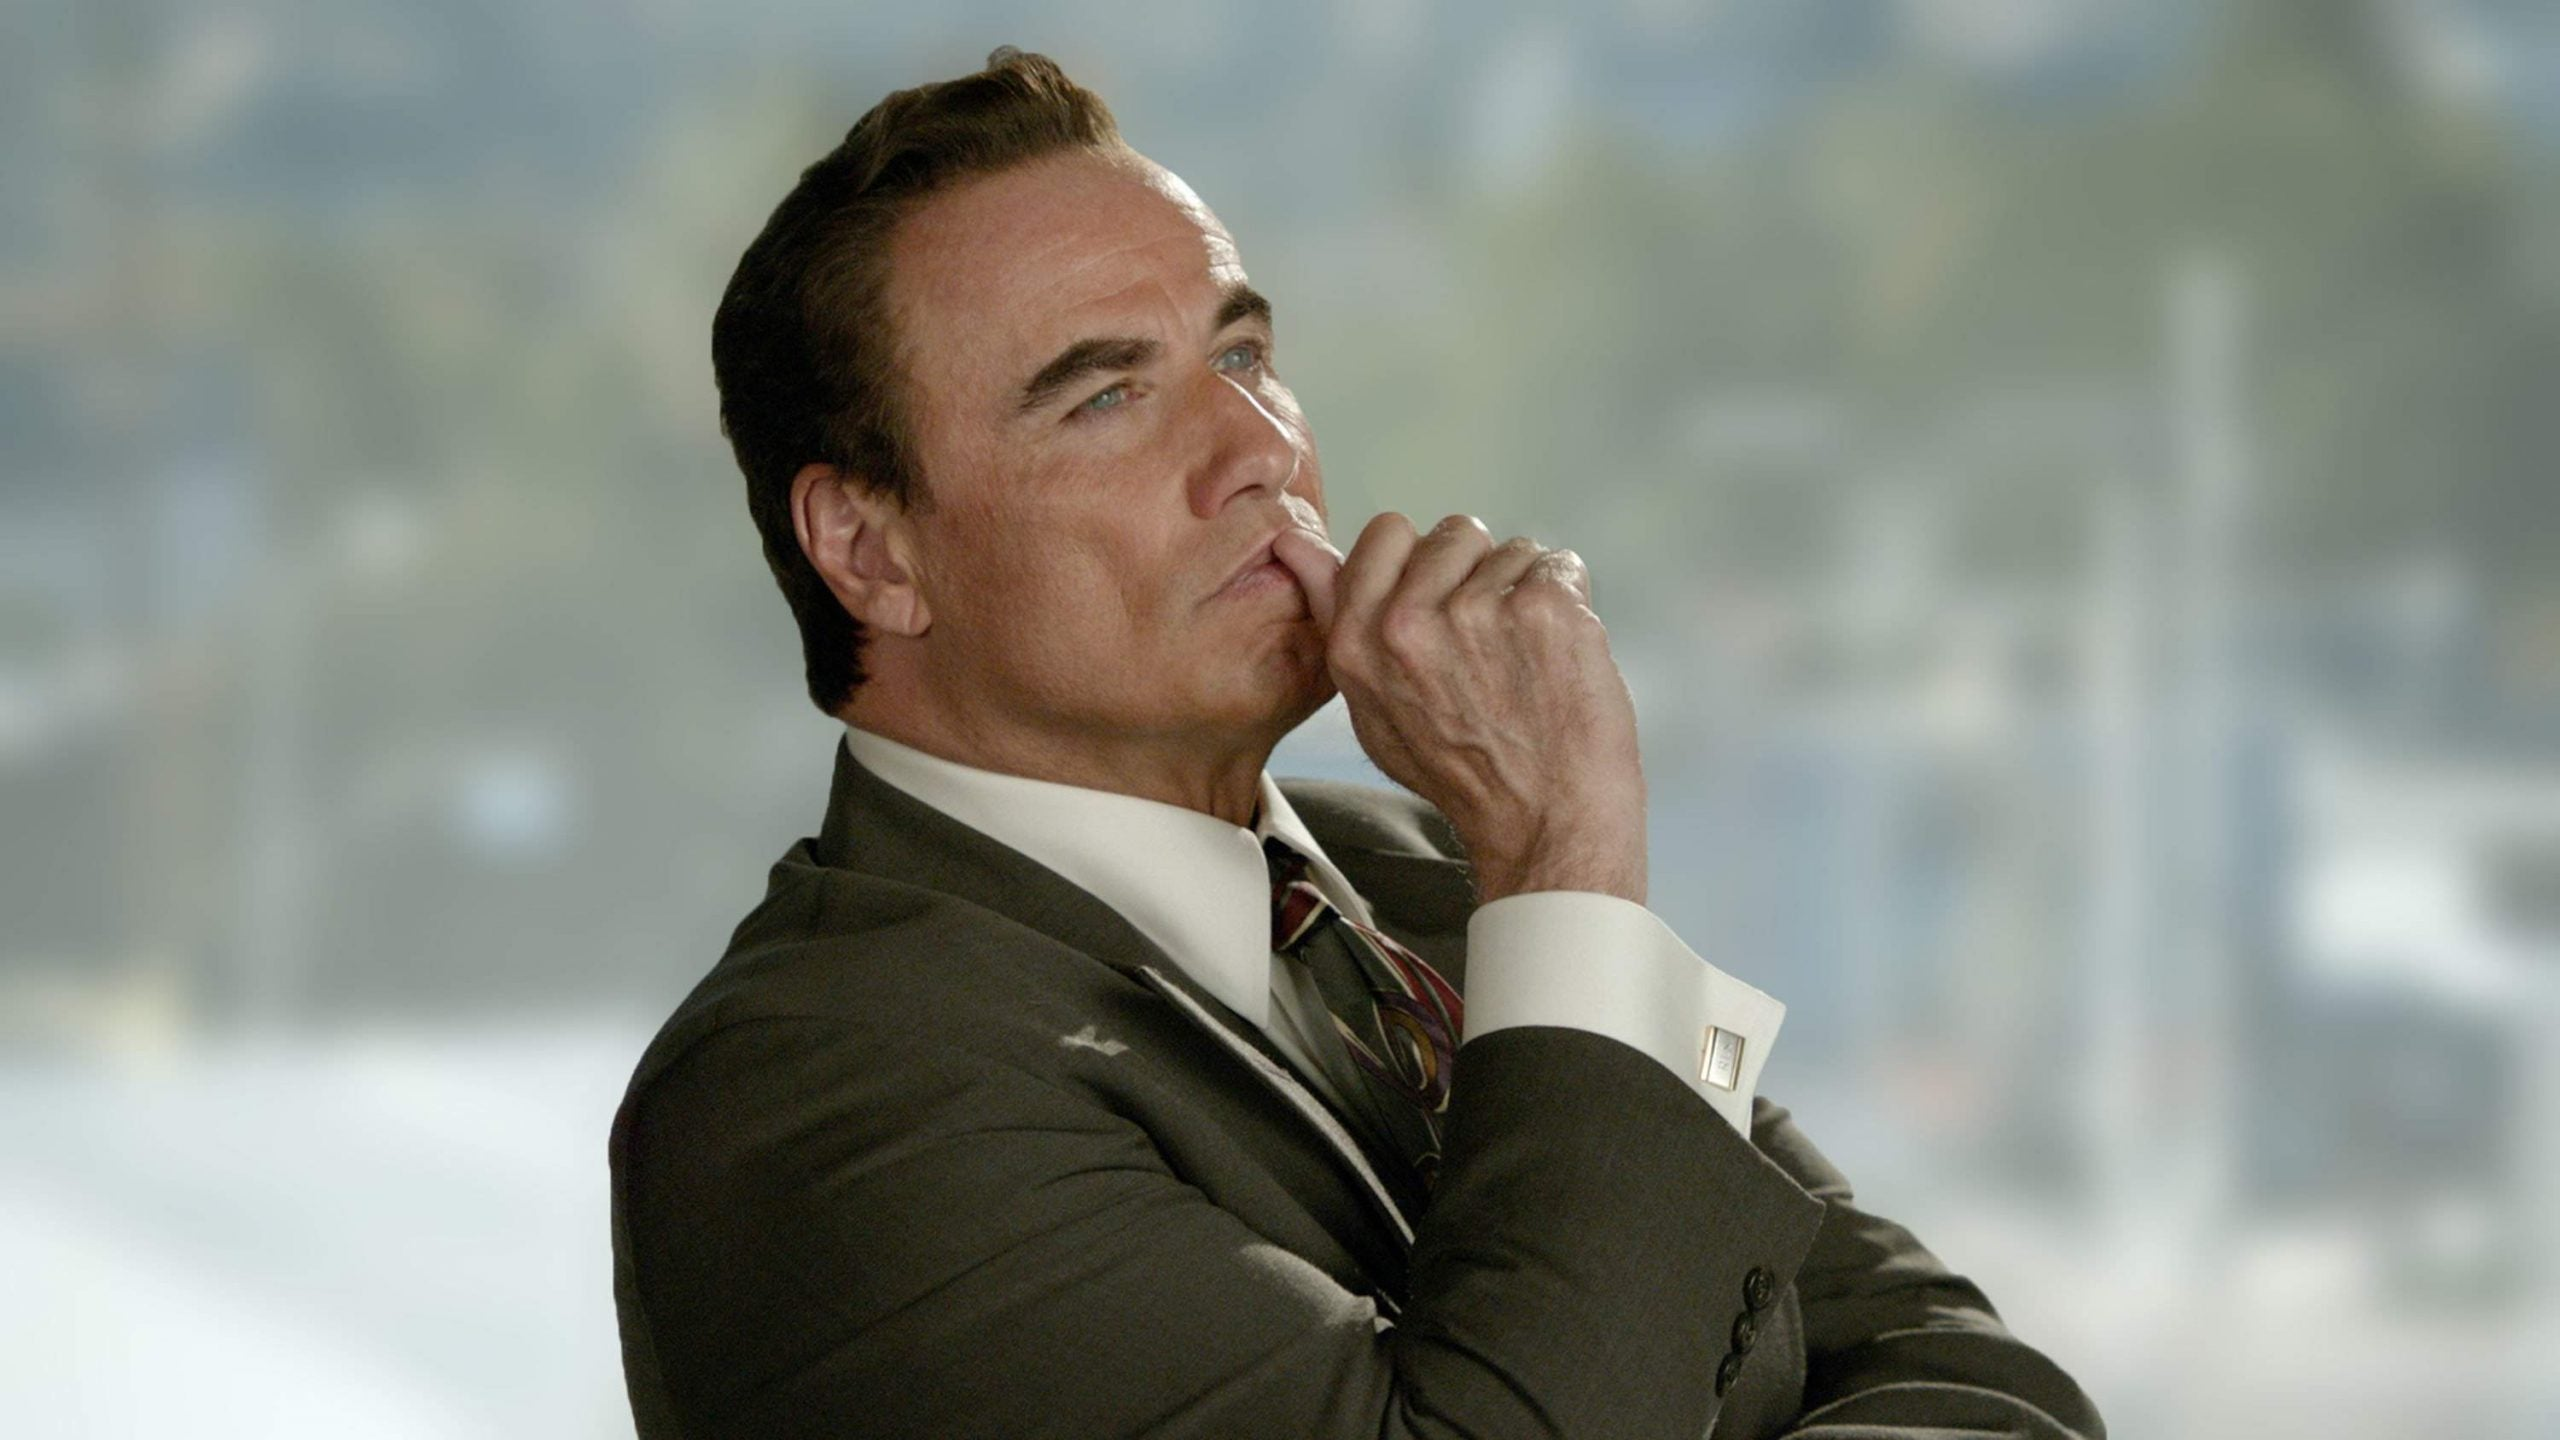 It's hard to meditate on the details of The People v O J Simpson once you see John Travolta's eyebrows